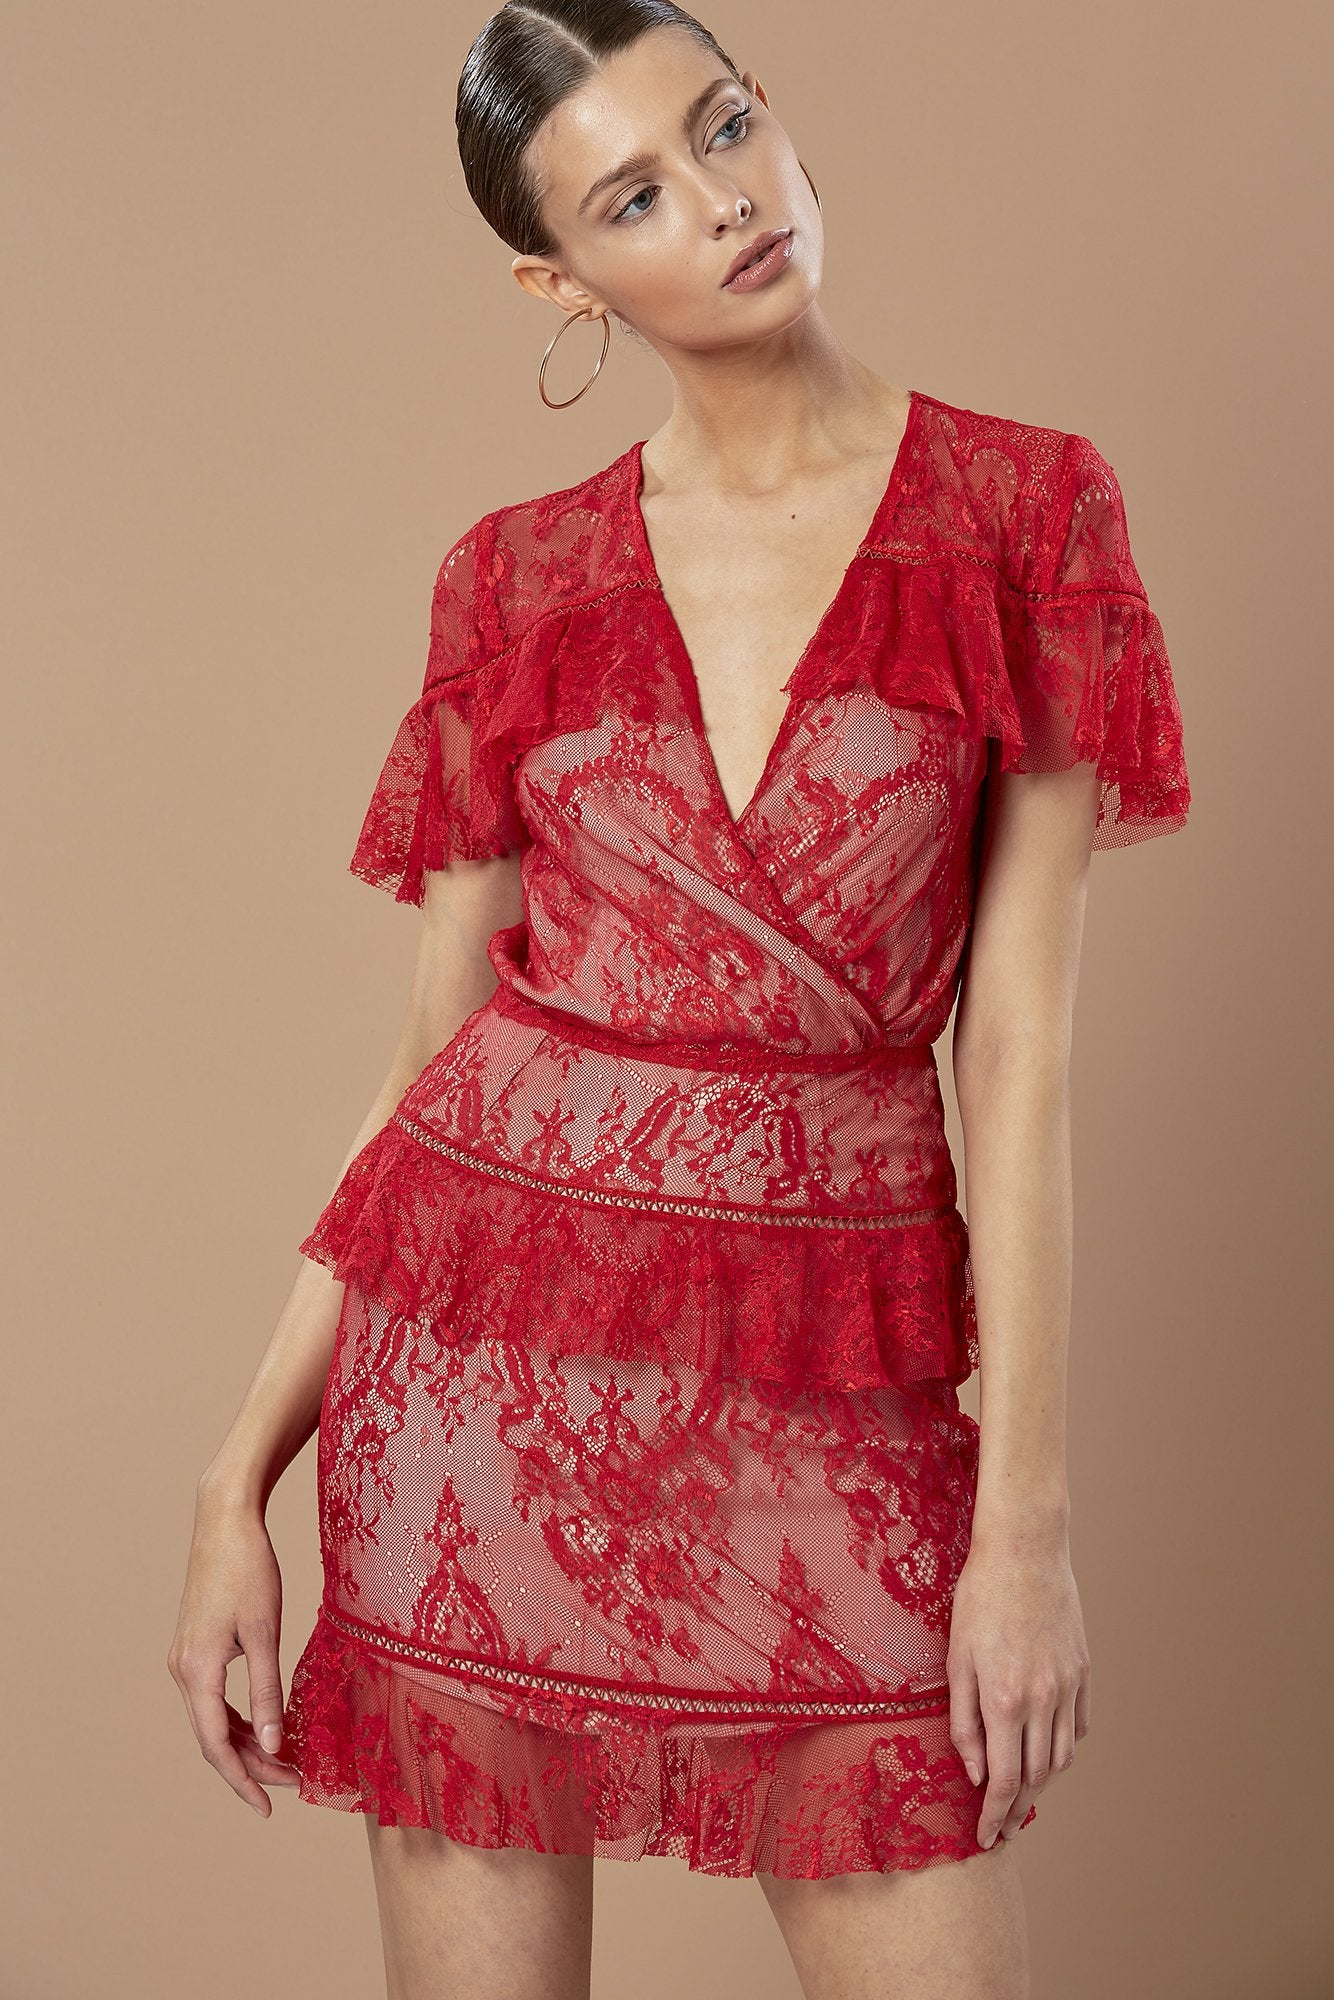 Willow Frill Dress - Red